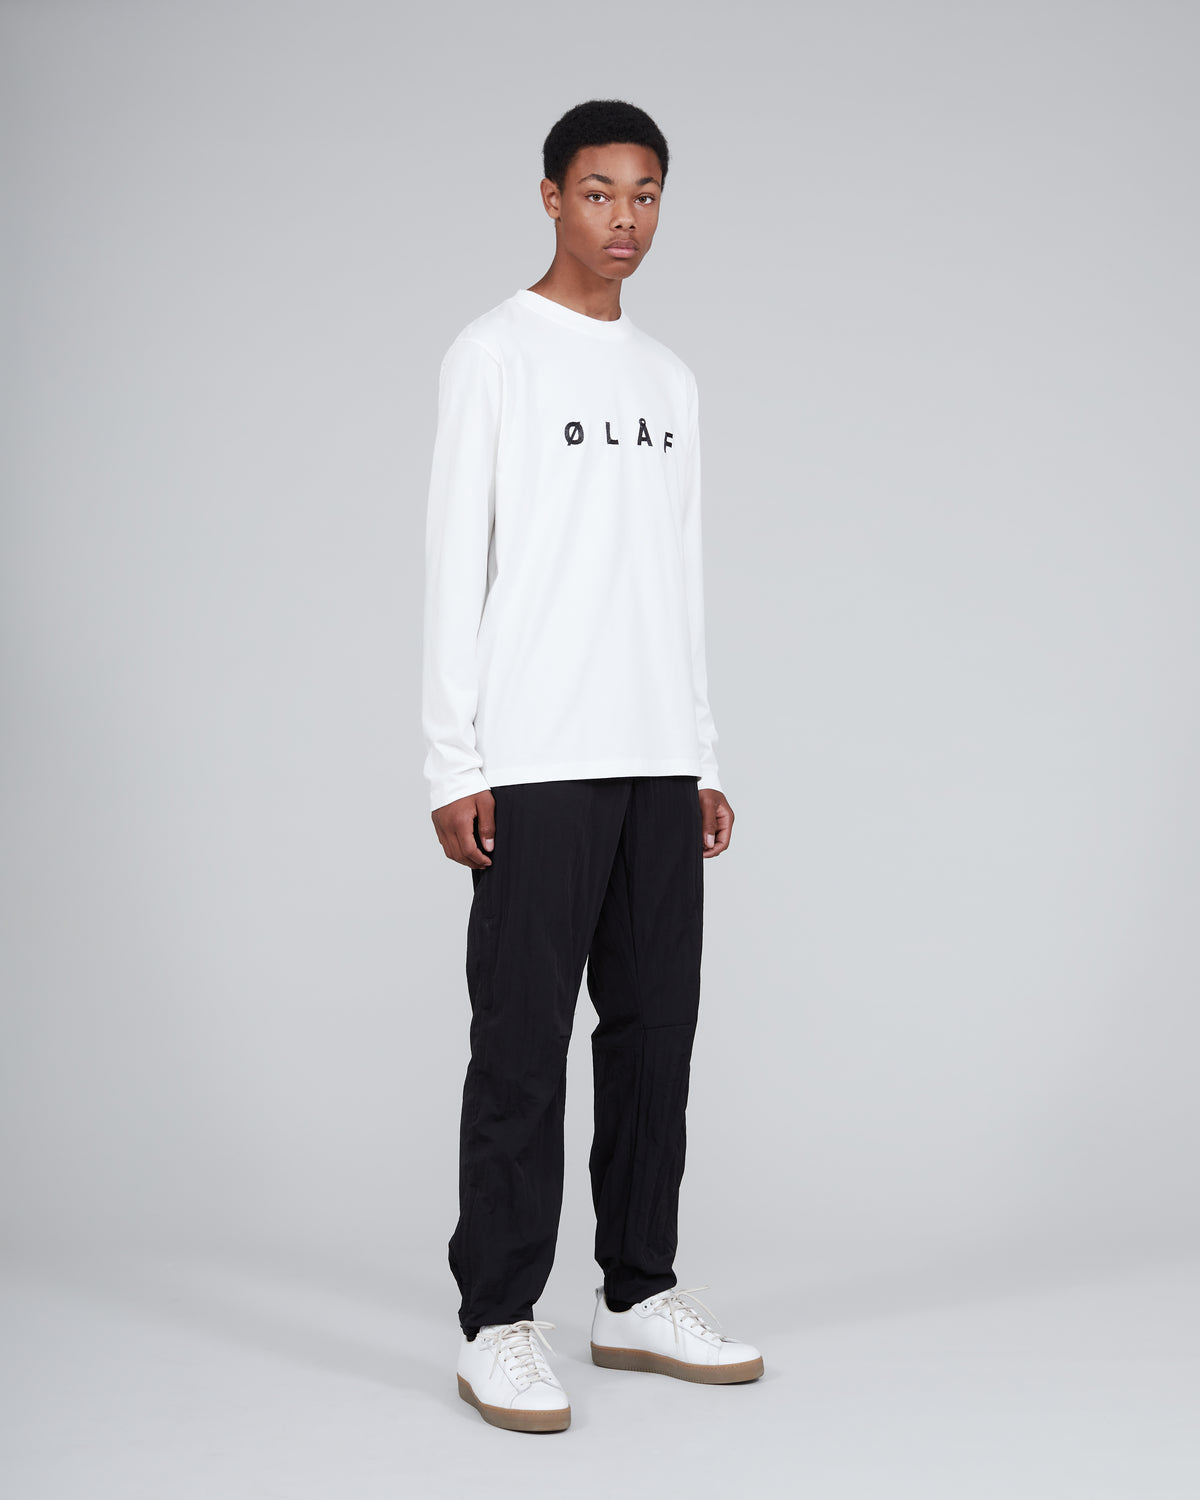 ØLÅF Sans Long Sleeve <br>White